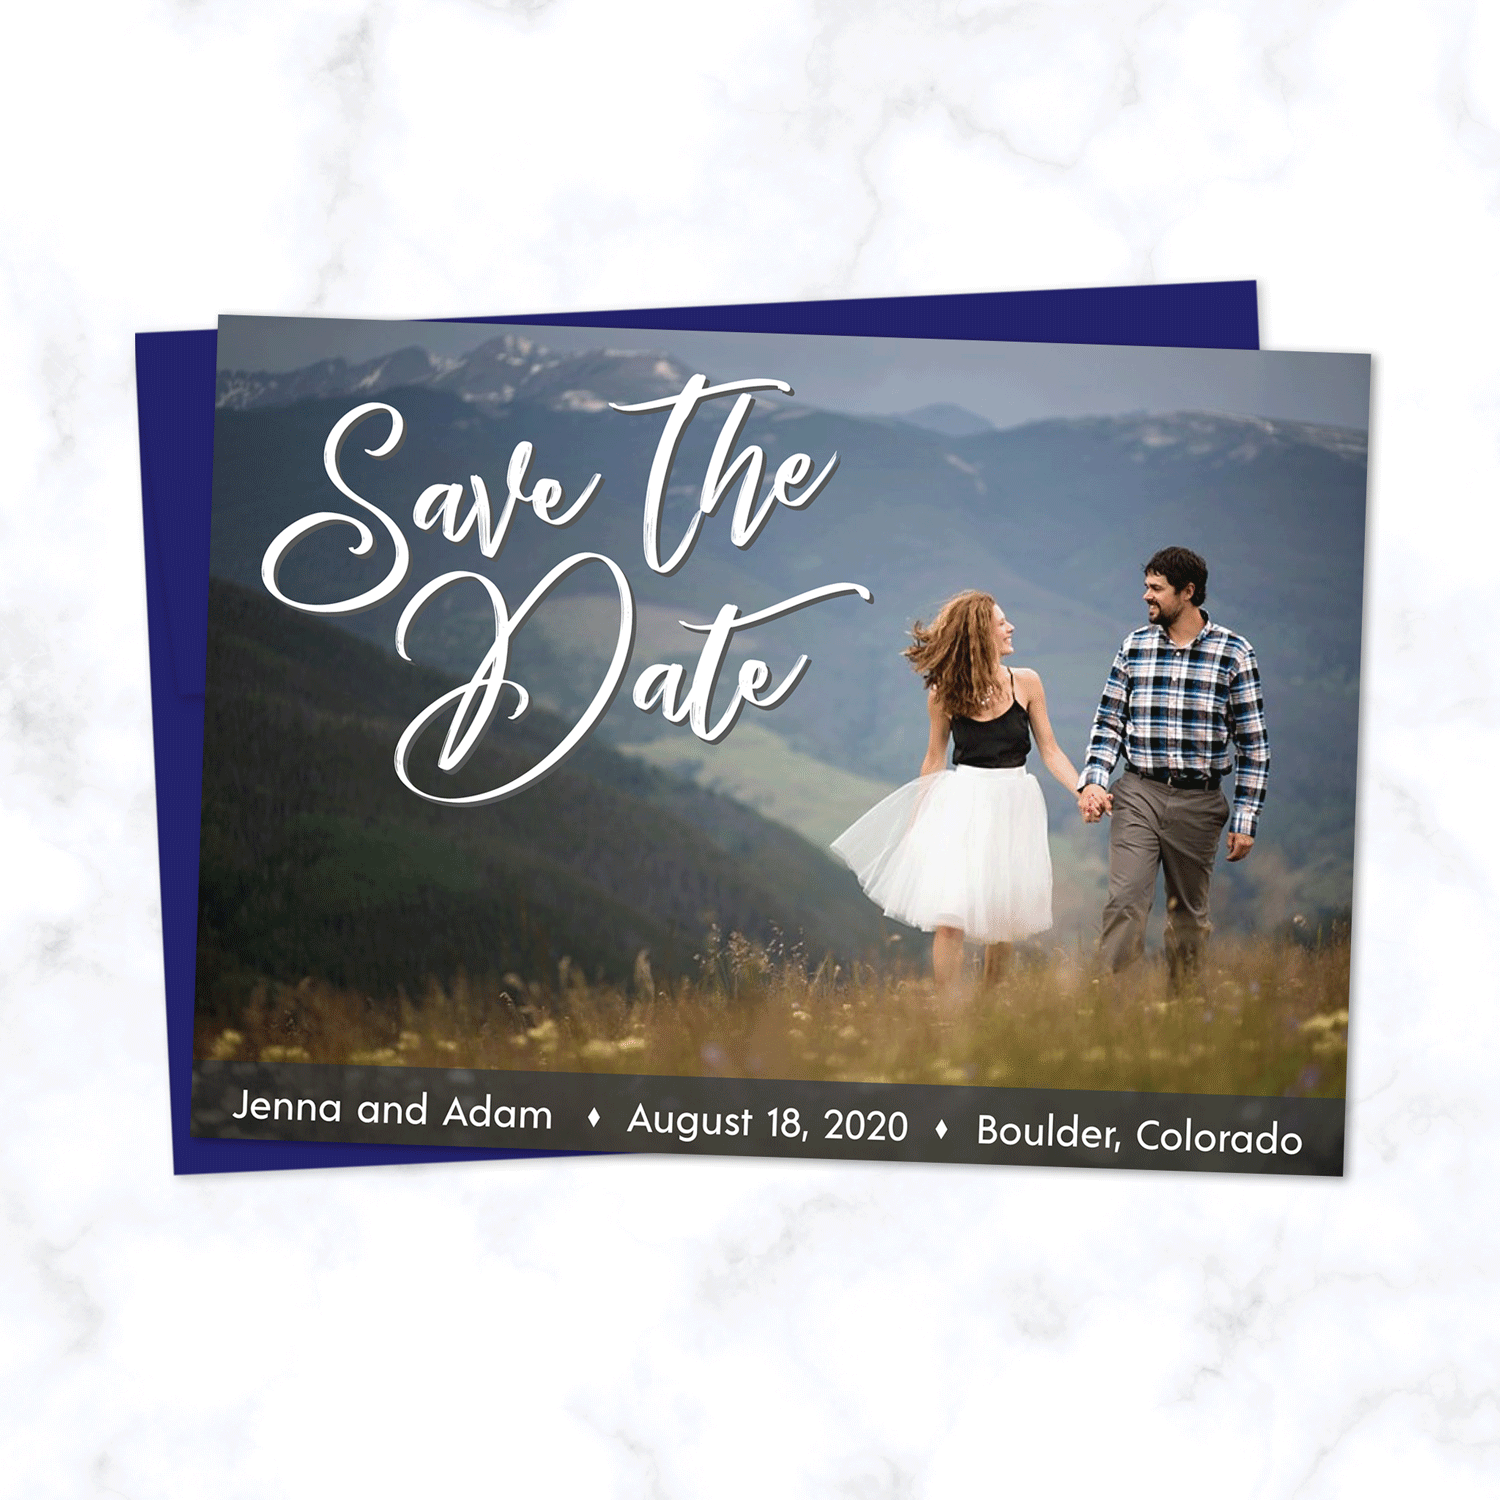 Full Photo Wedding Save the Date Card with Sapphire / Navy Blue Envelopes - Landscape Orientation with Full Color Photograph